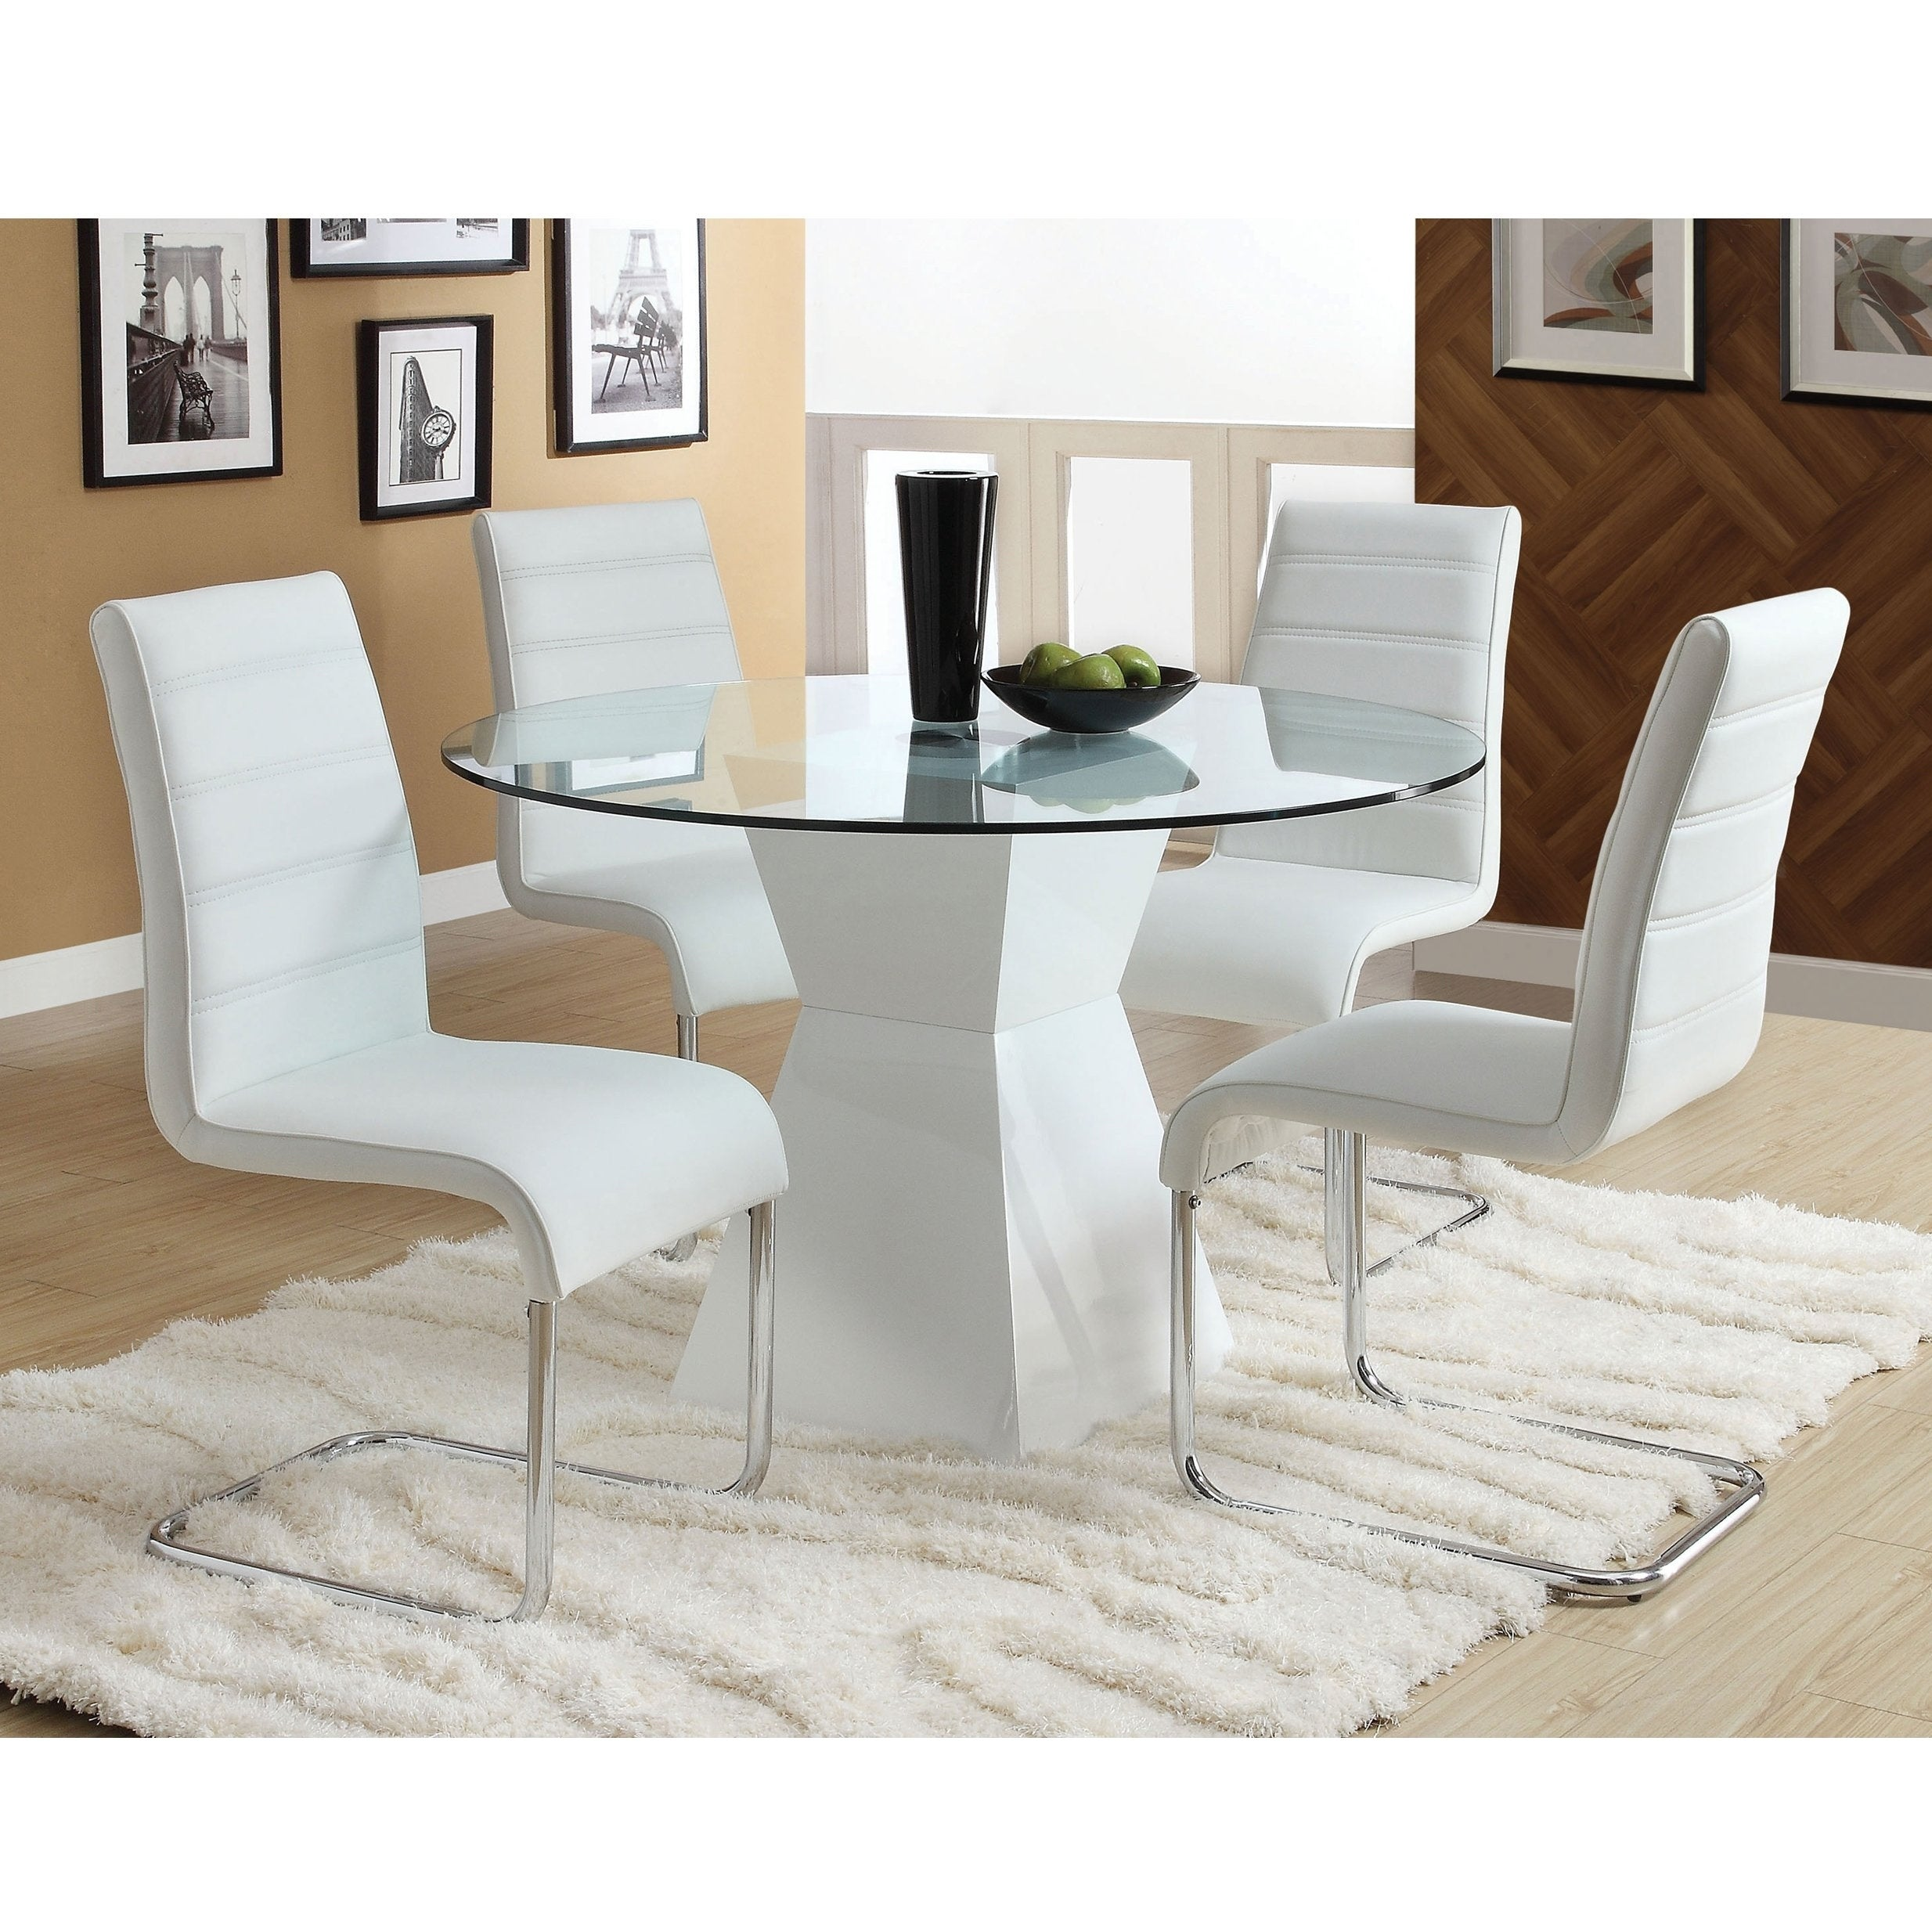 Athenau0027 Contemporary White 5 Piece High Gloss Dining Set By FOA